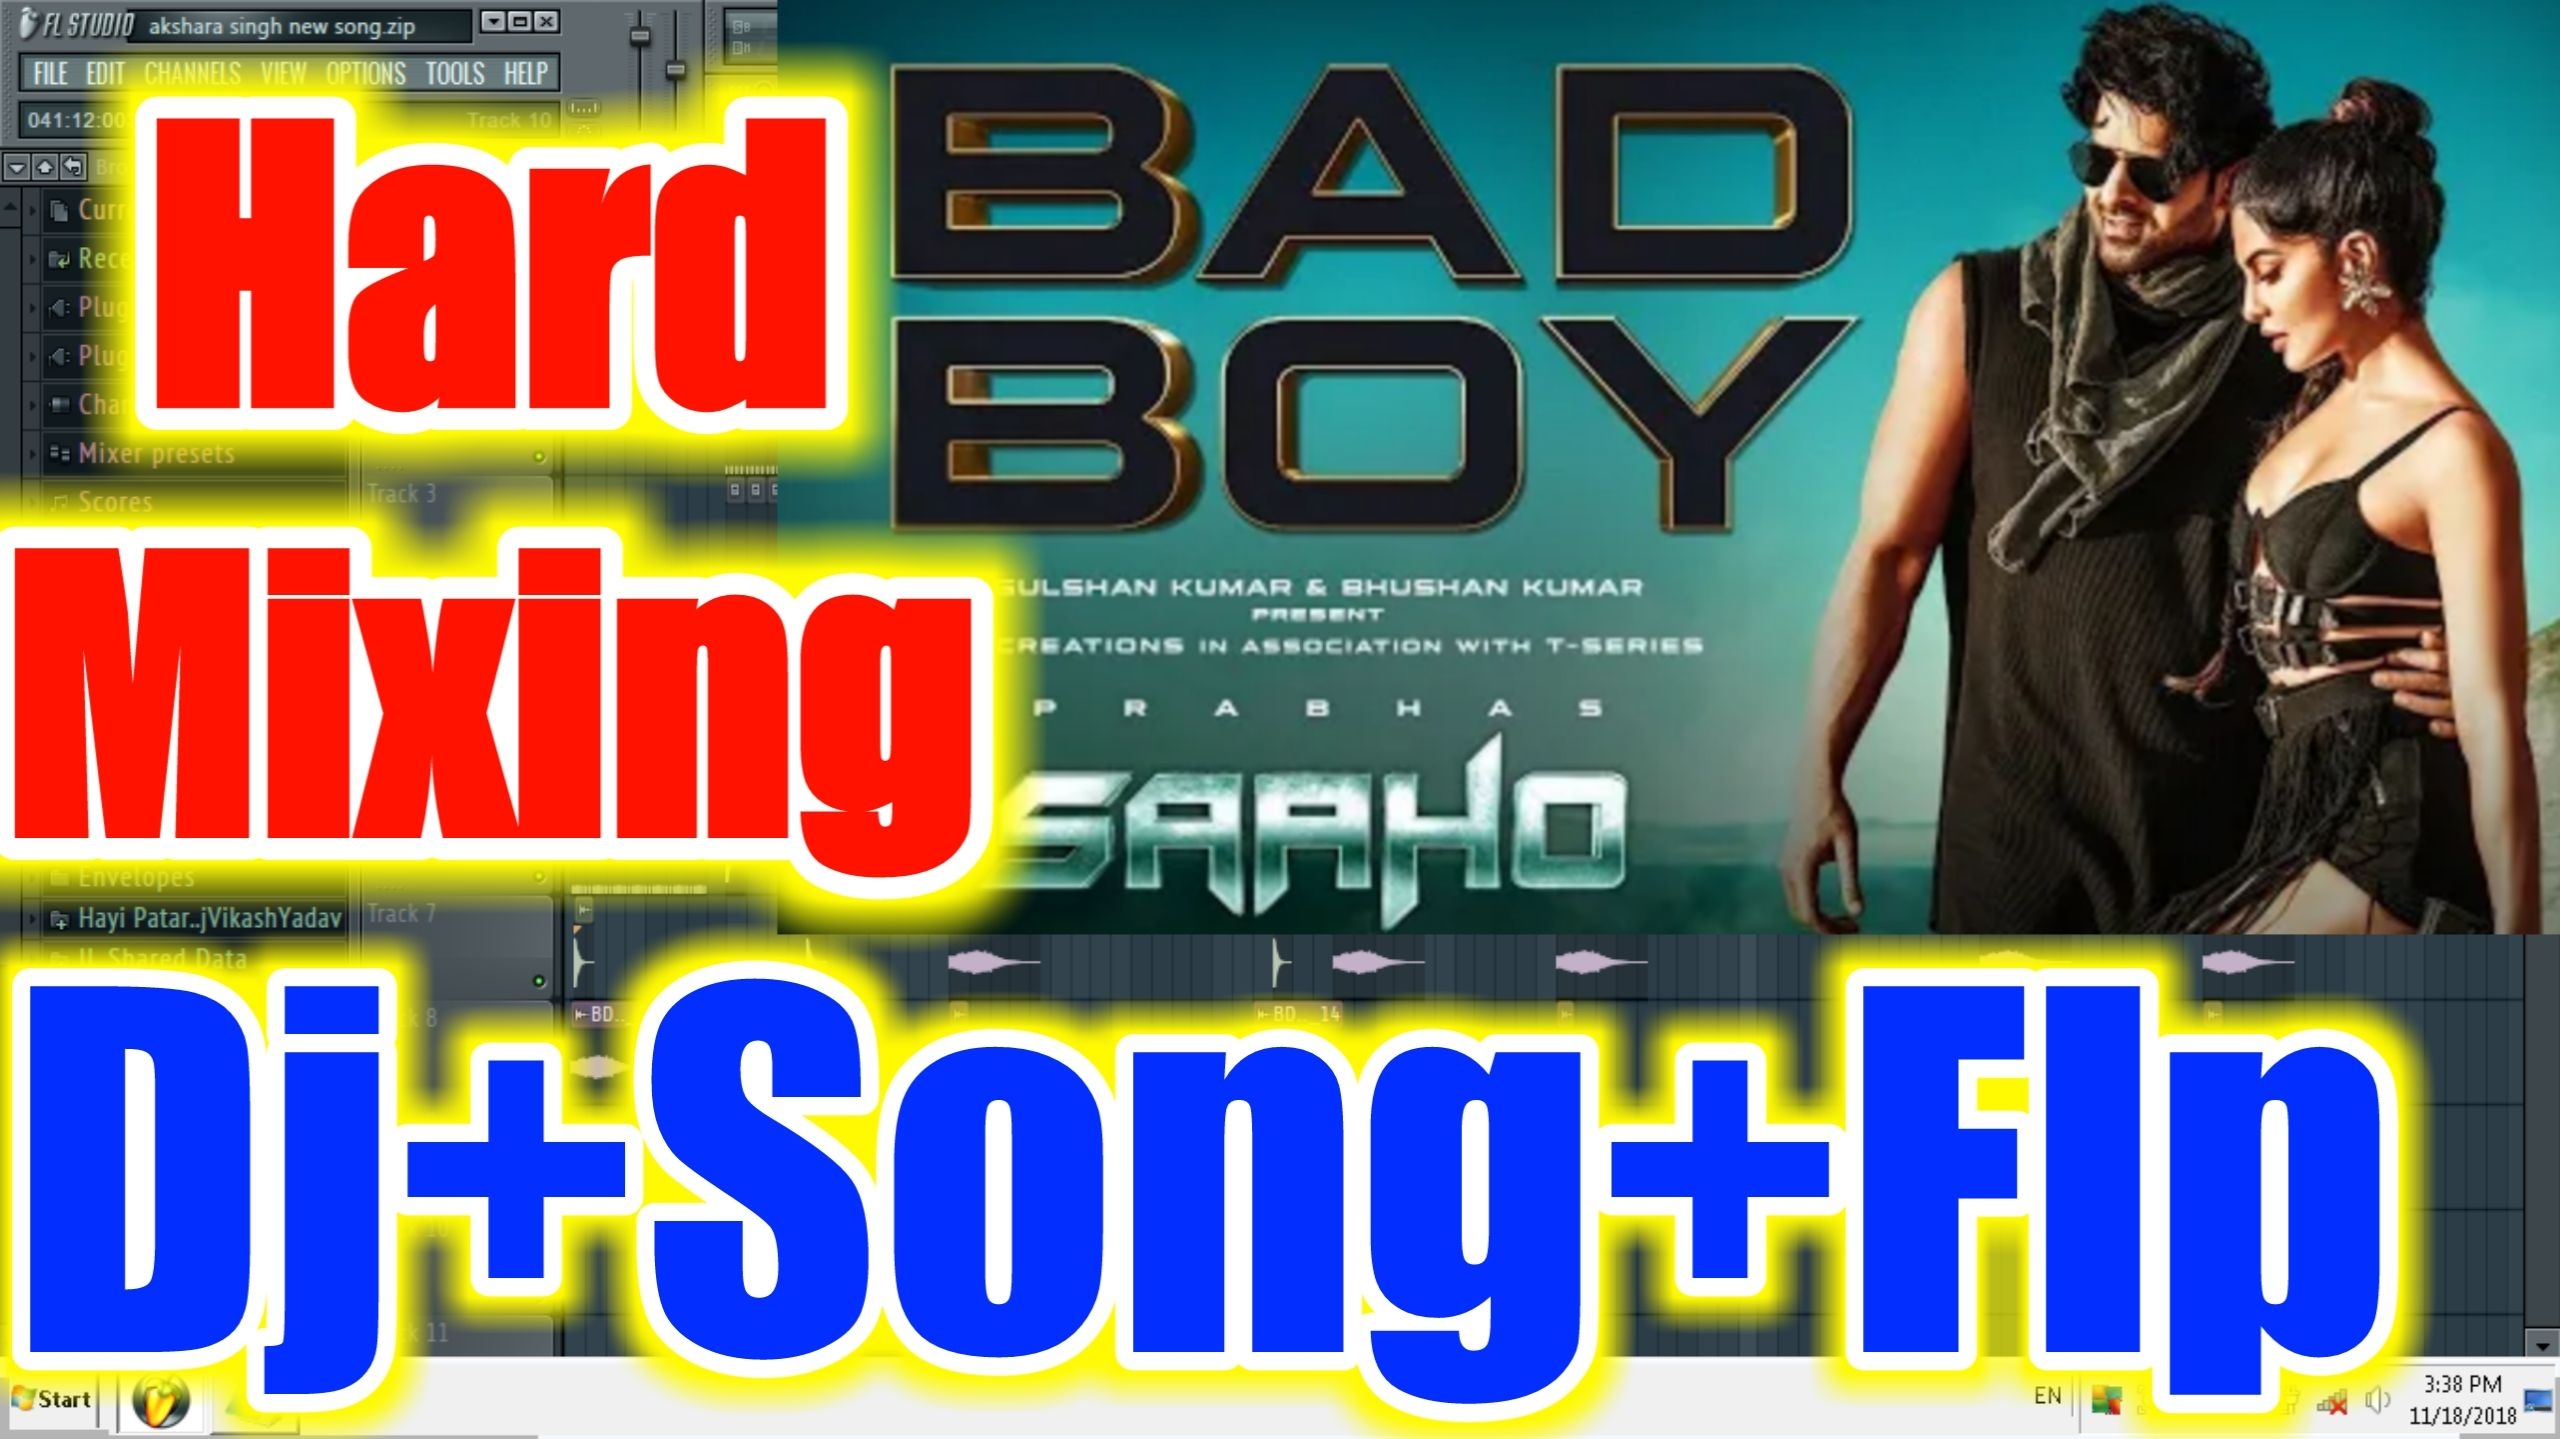 Bad Boy Song Flp Project Saaho Songs Dj Flp Project Bad Boy Saaho Song Dj Flp Project New Flpsong Bad Boys Songs Mp3 Song Download